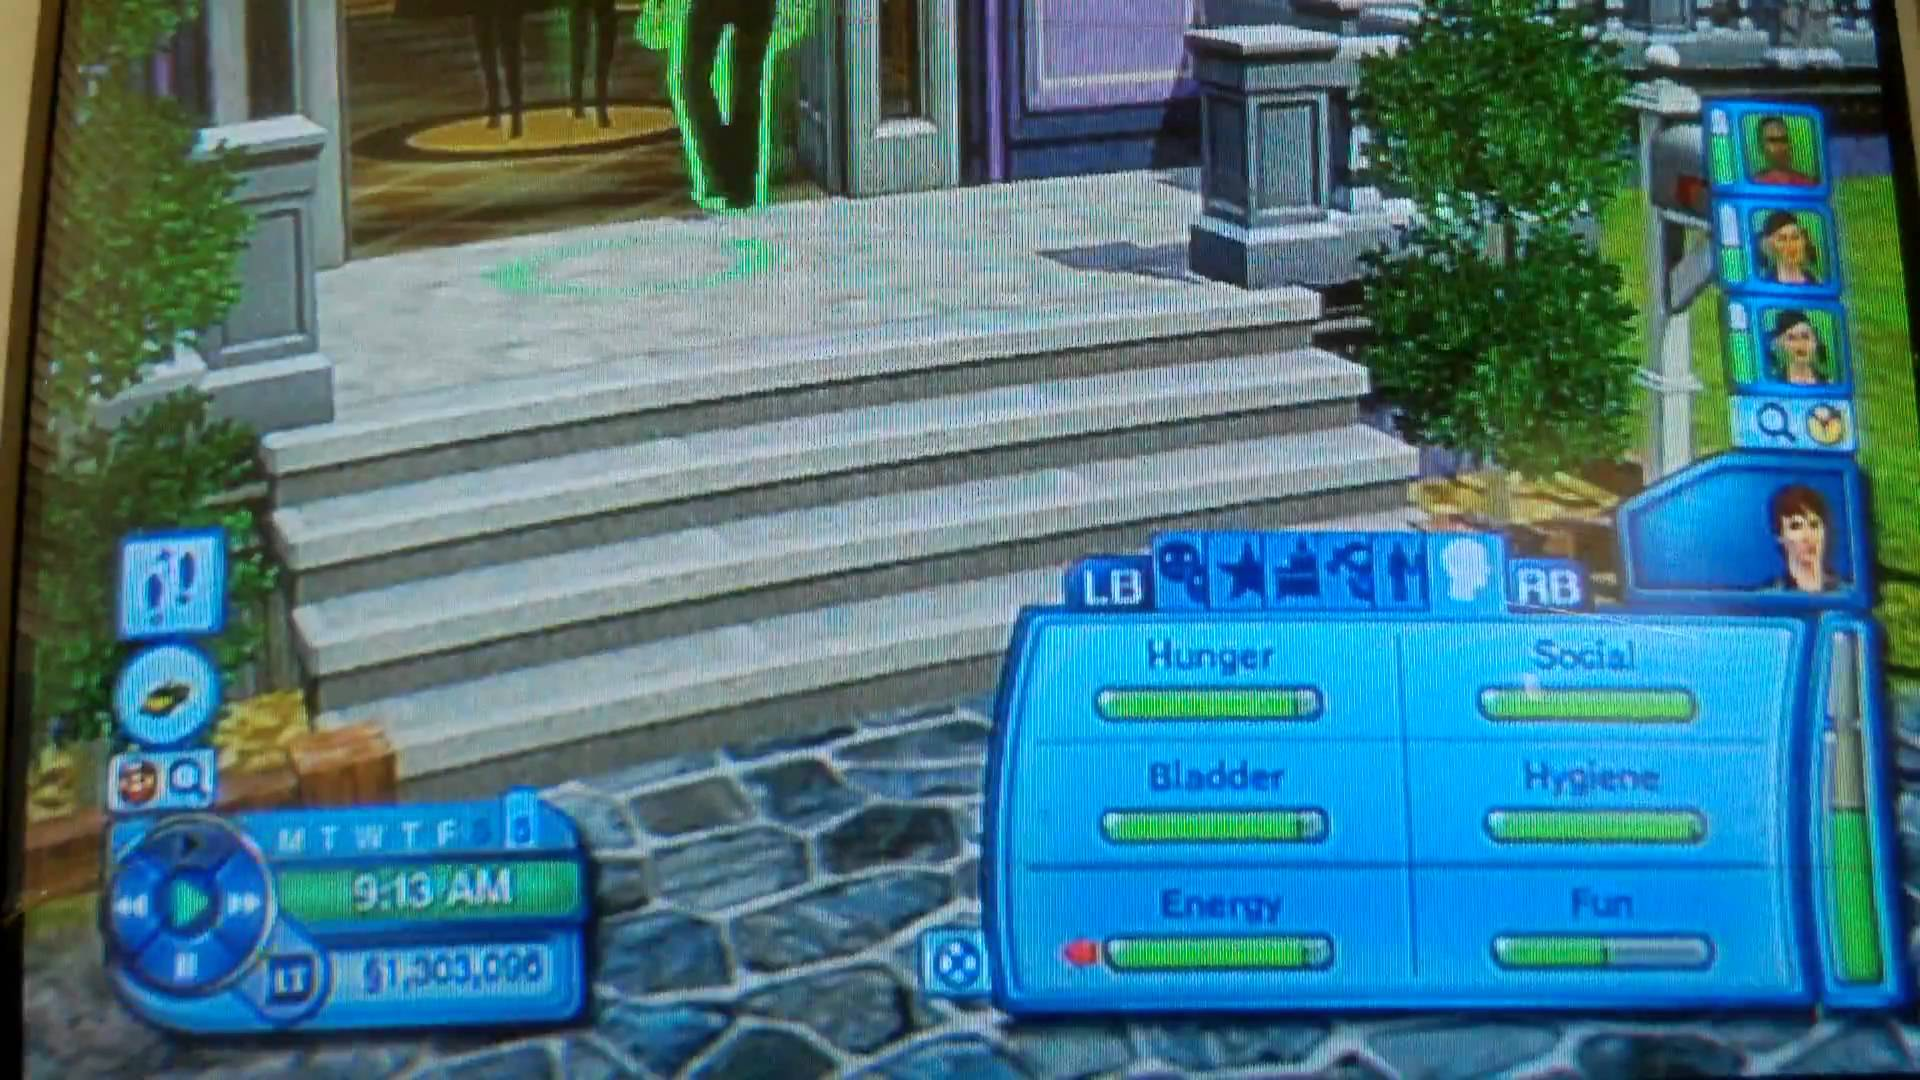 Sims 3: Xbox 360 All Cheats - Video Games, Wikis, Cheats